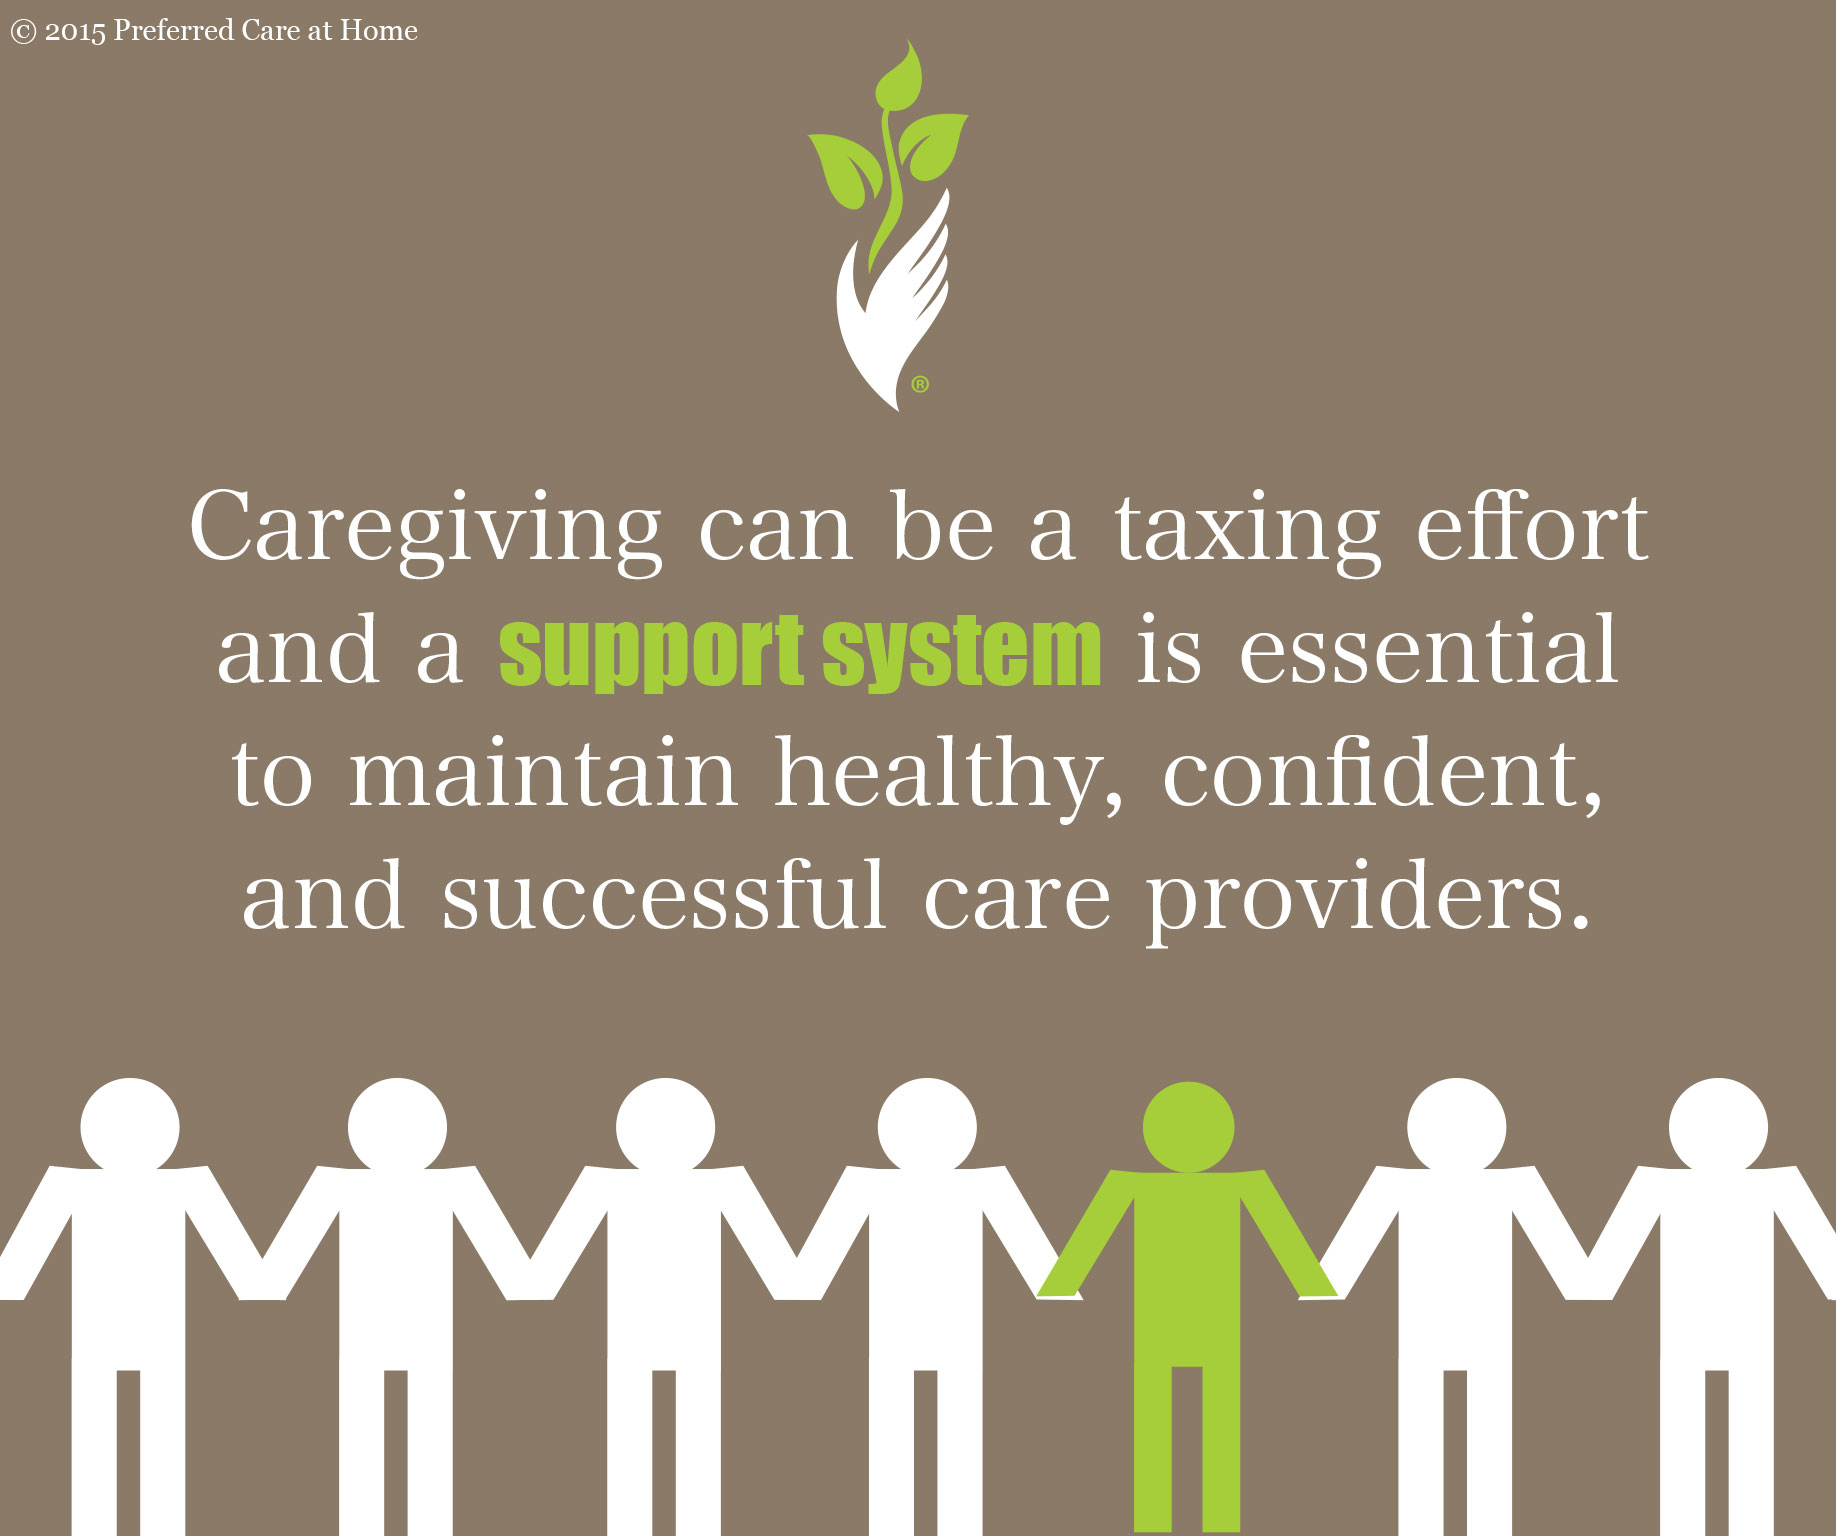 Key to Reducing Caregiver Stress:  Positive Attitude and Support